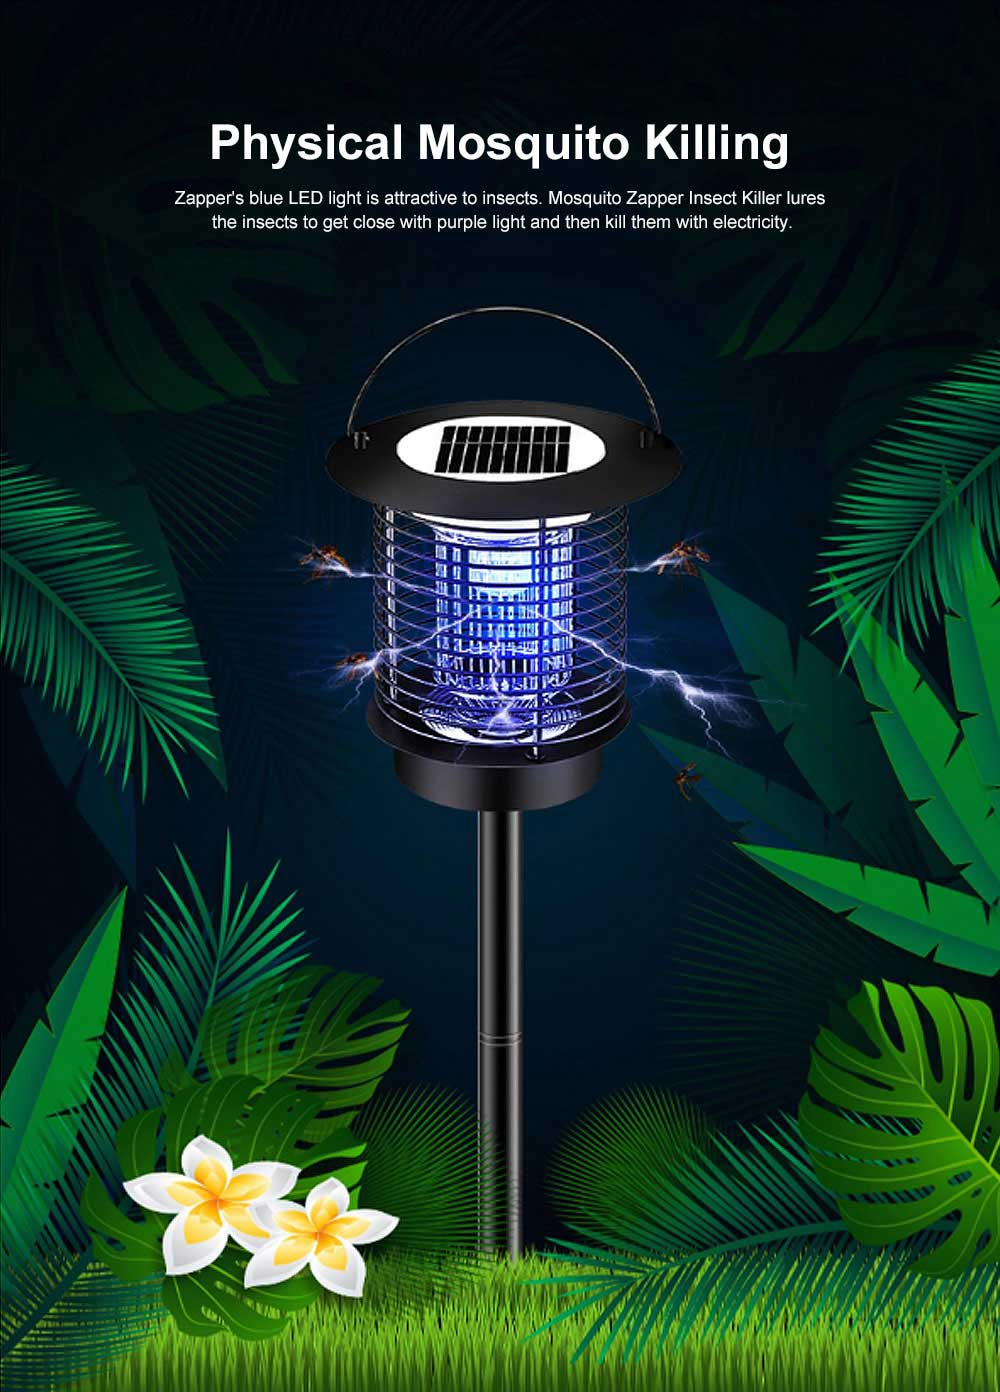 Solar Mosquito Zapper, Waterproof Solar Powered LED Light Pest Bug Zapper, Insect Mosquito Killer for Ground Garden Lawn Residential, Commercial, Industrial 1